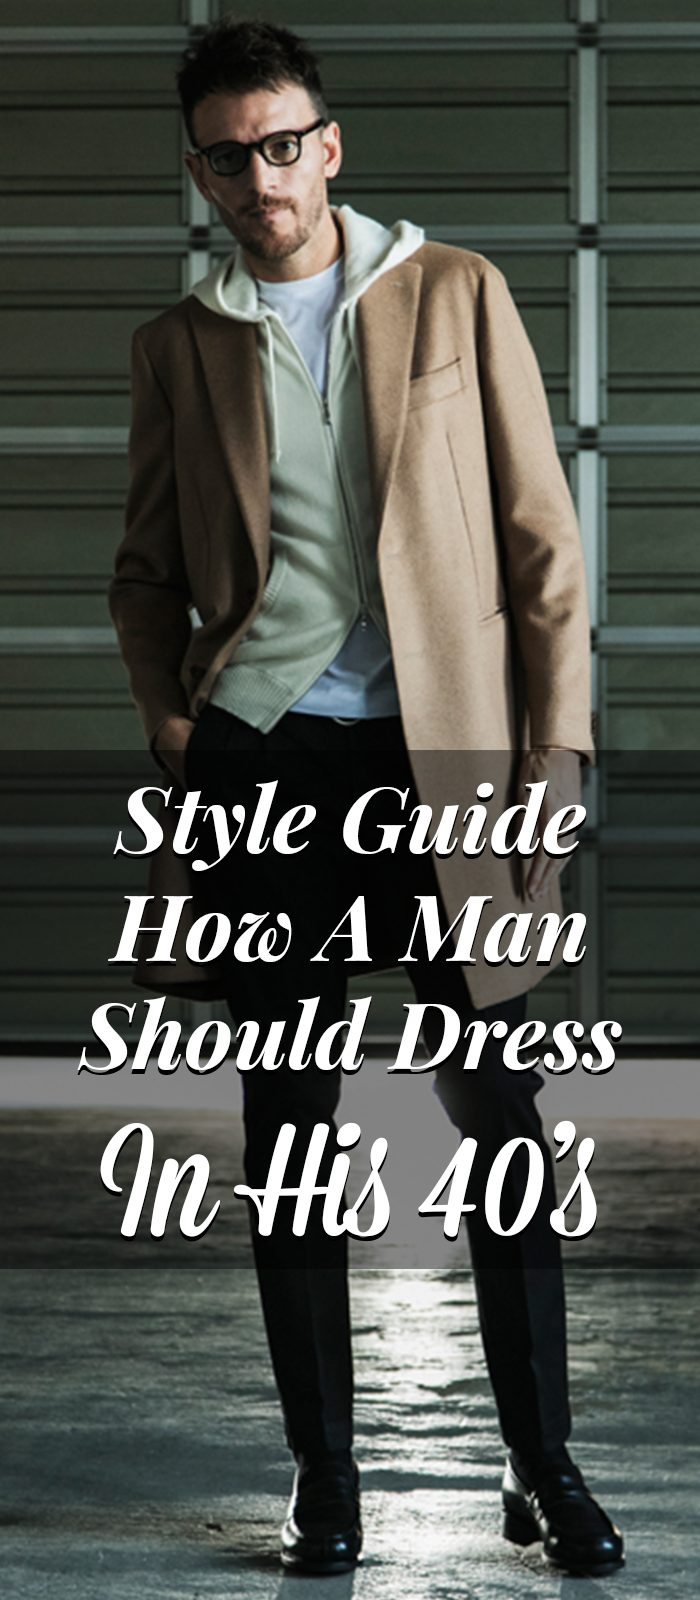 Style Guide - How A Man Should Dress In His 40's